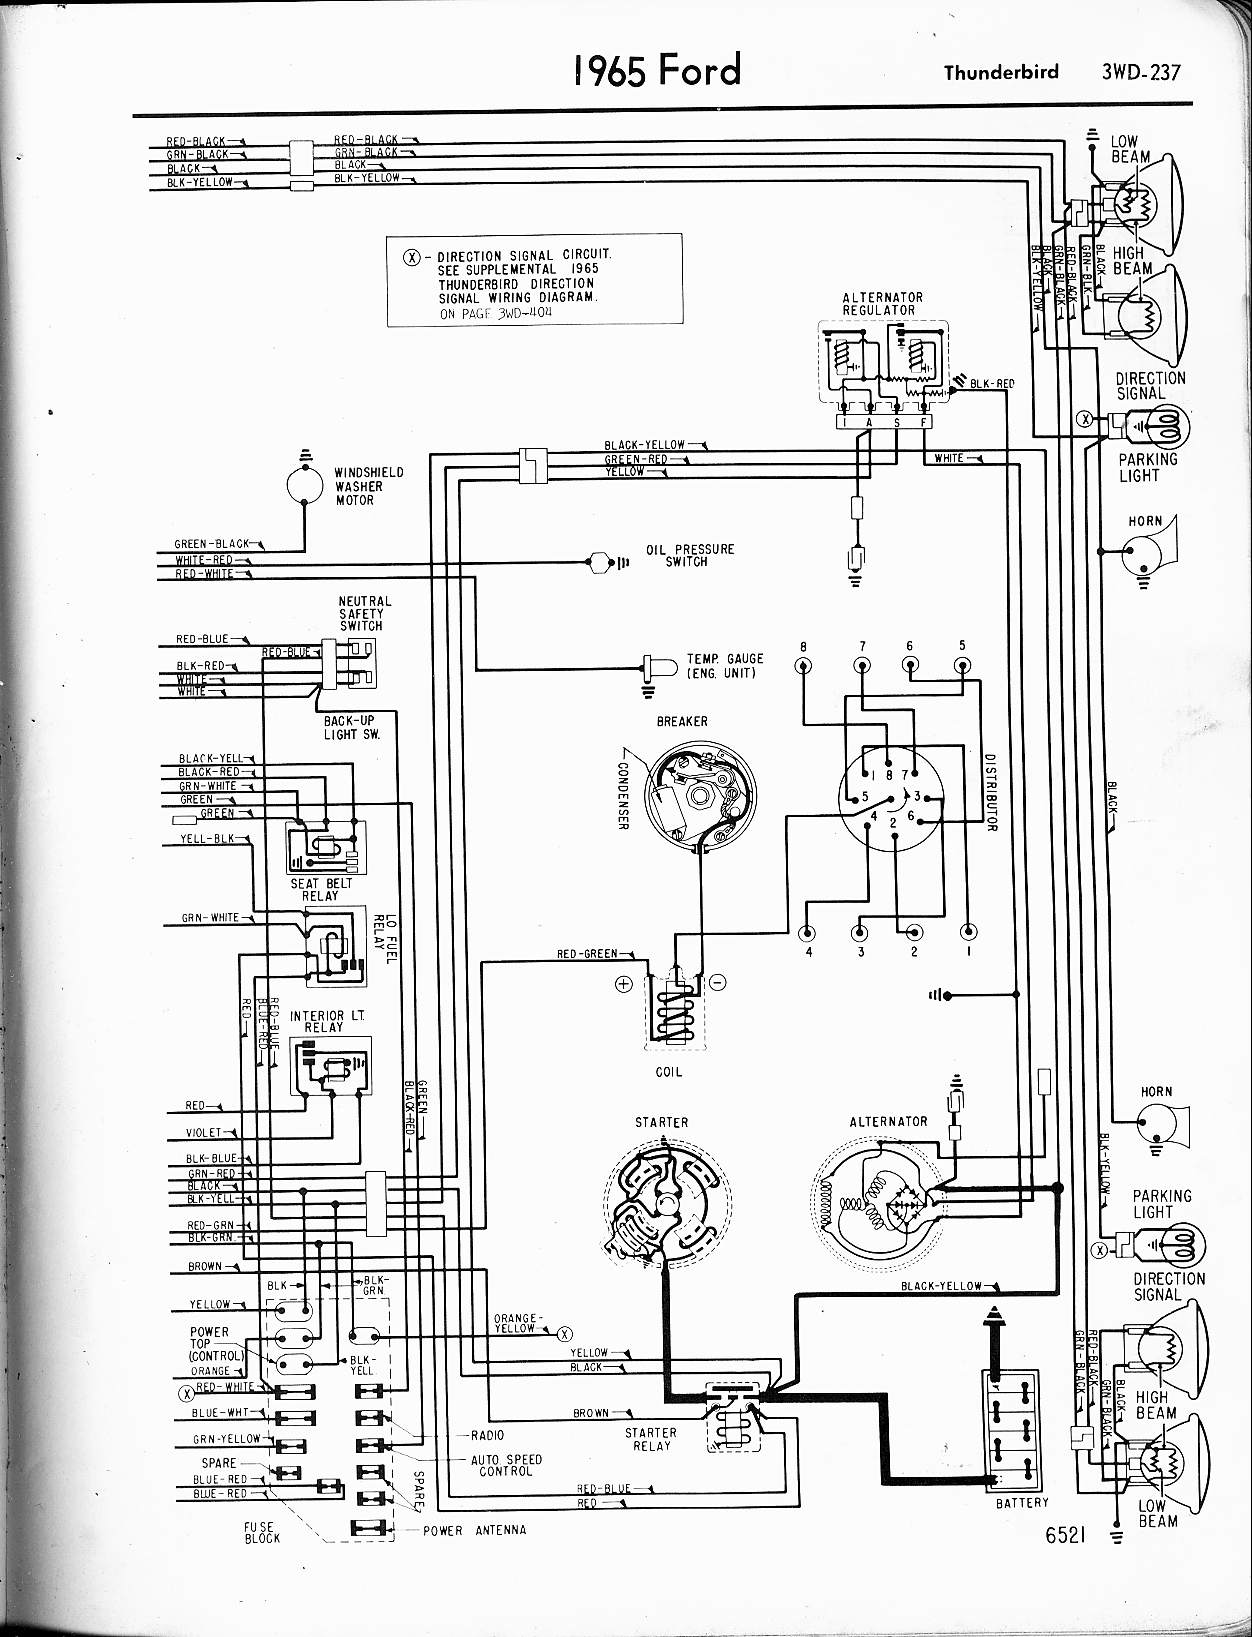 57 65 ford wiring diagrams Ford Electrical Diagram 1965 thunderbird right